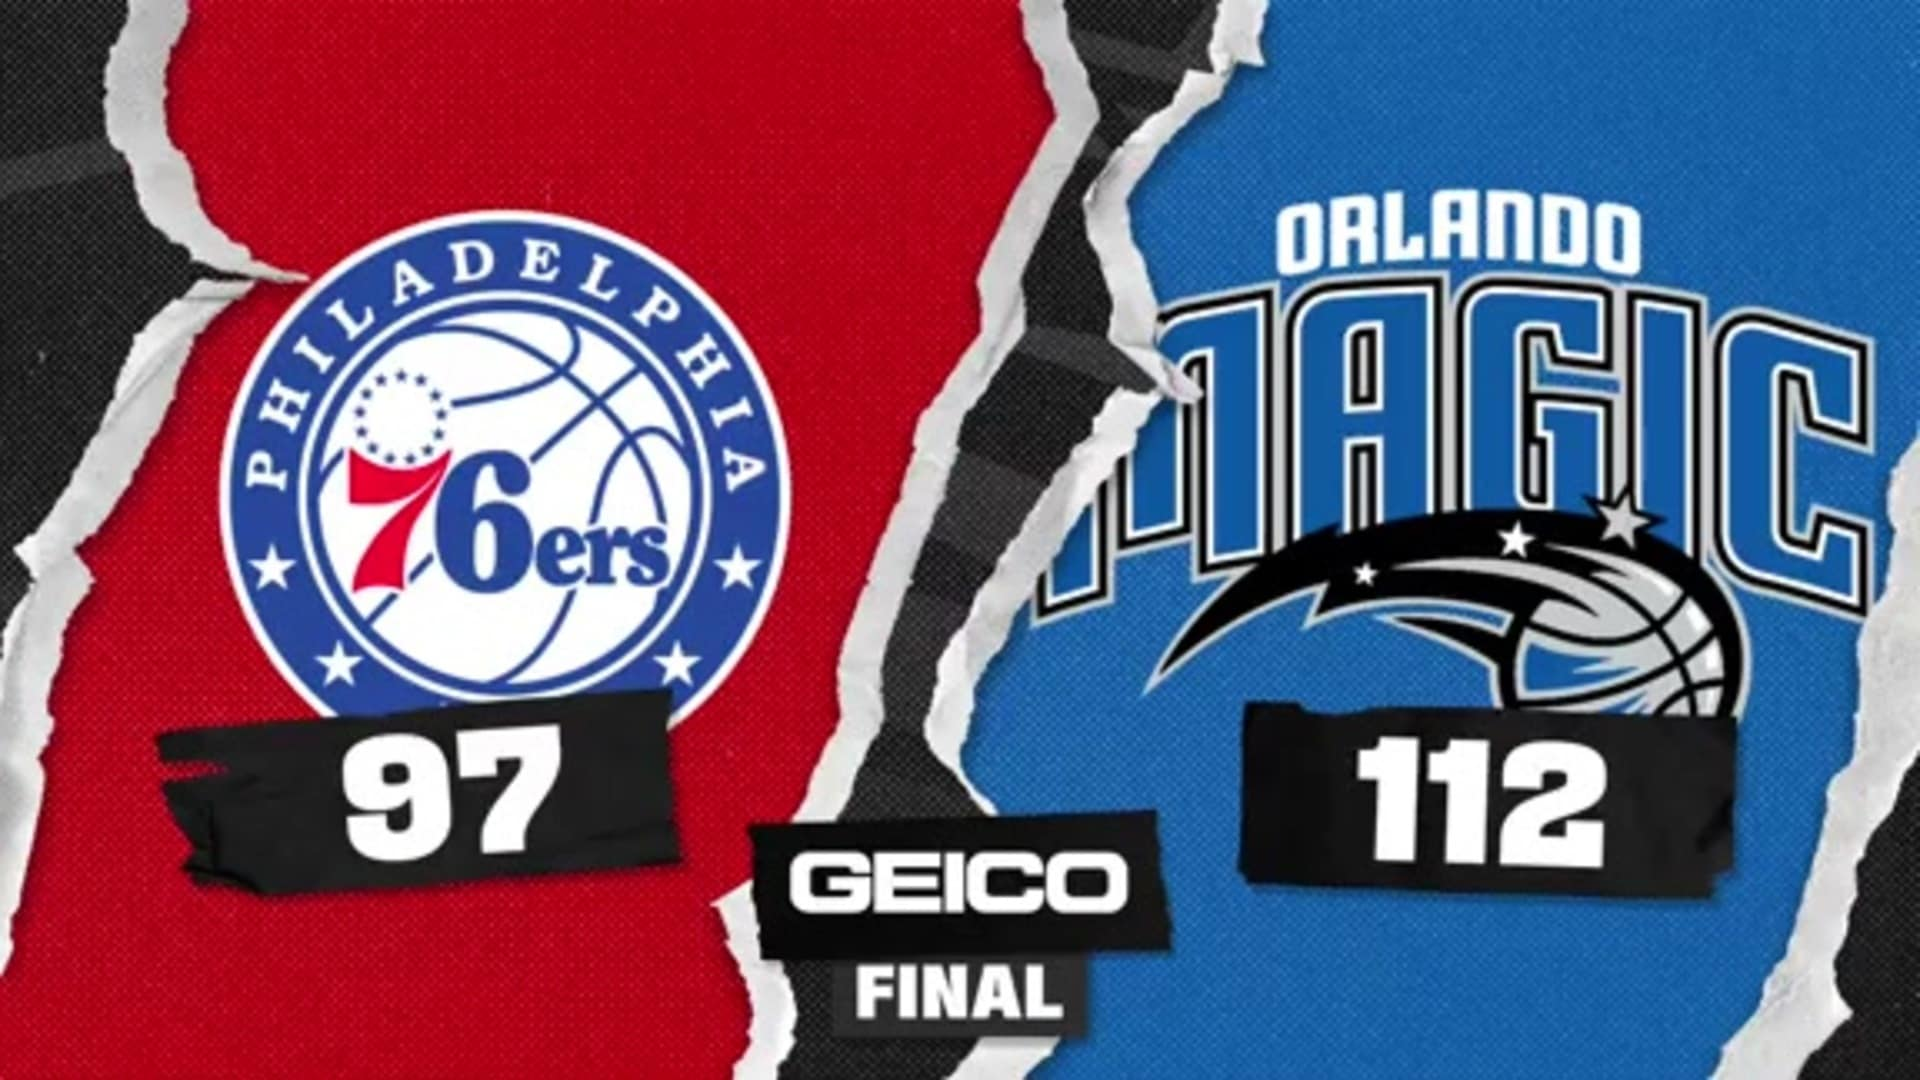 Game Highlights: Magic 112, Sixers 97